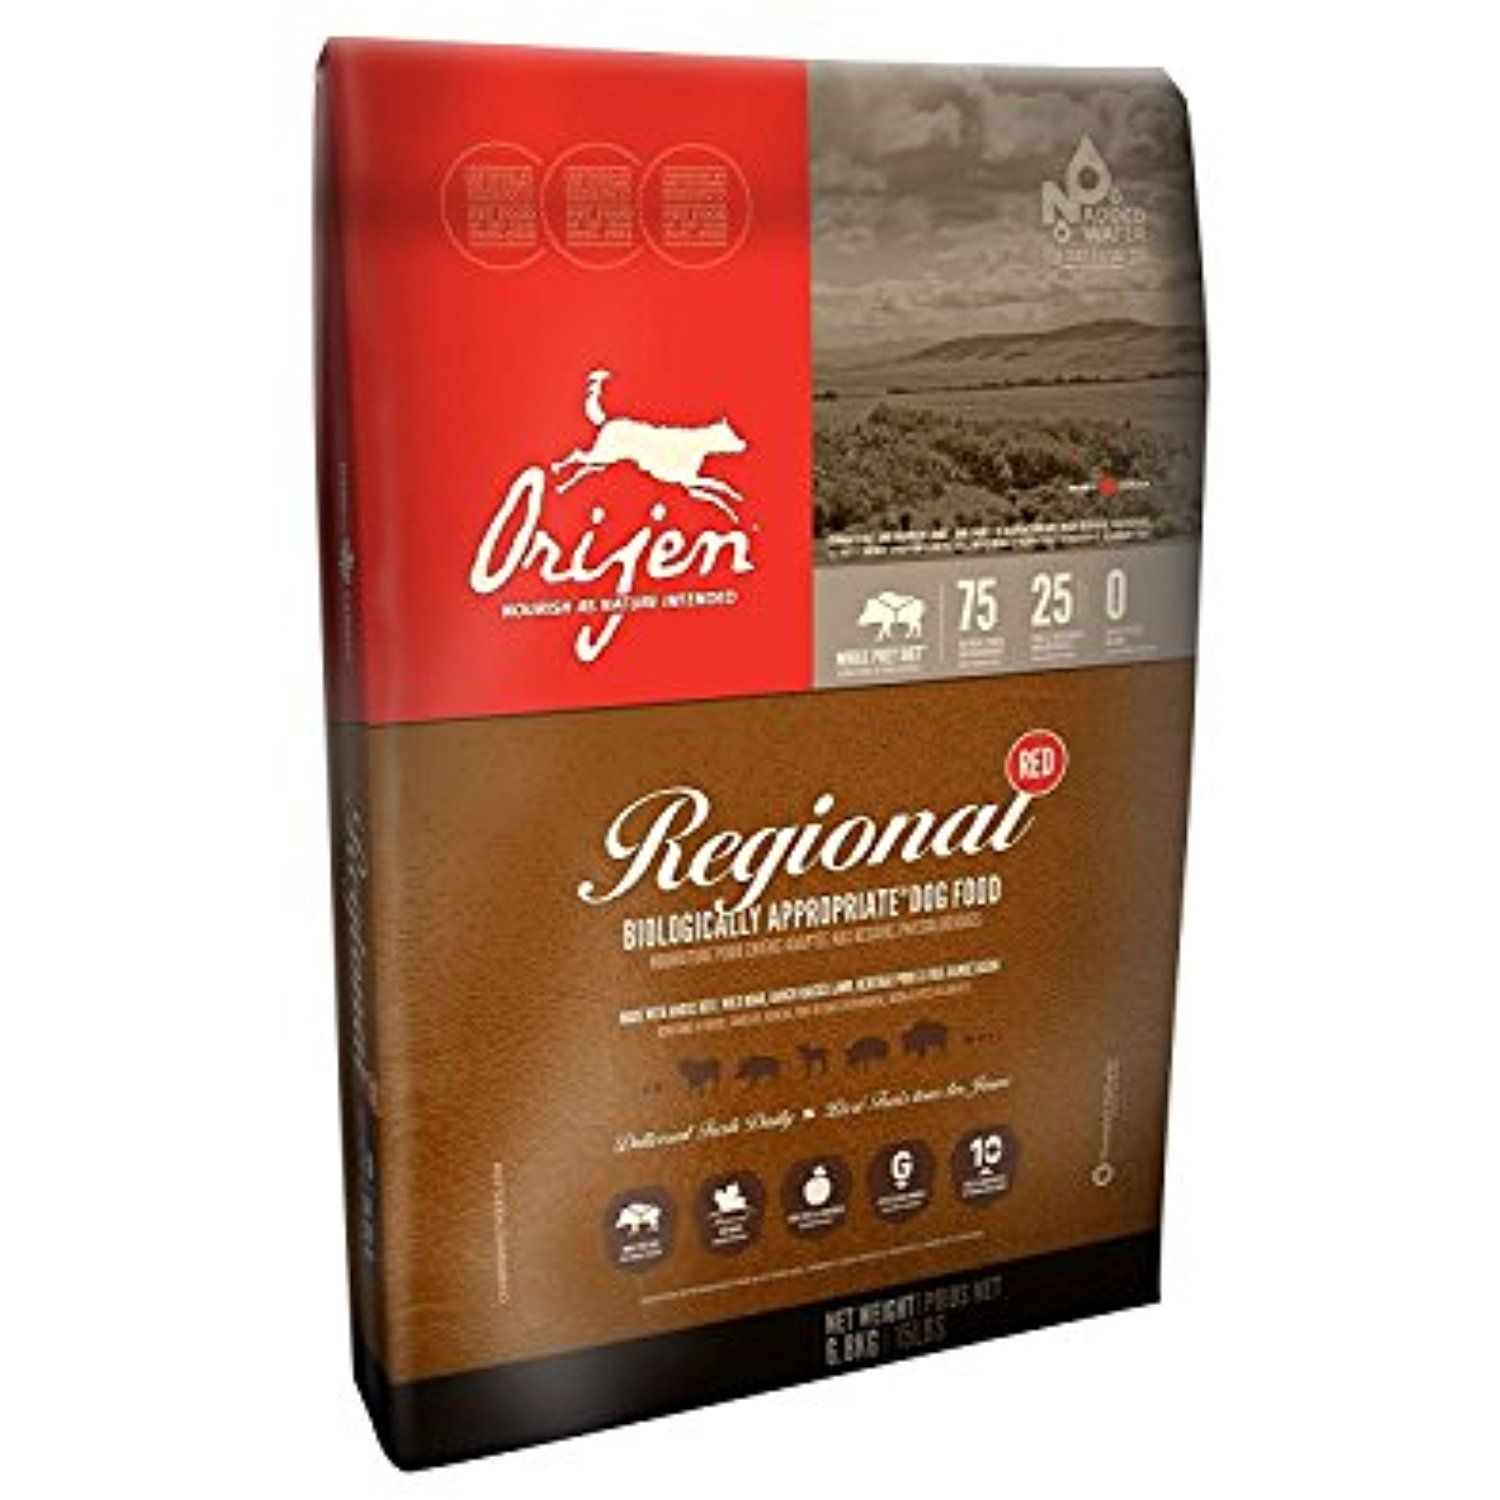 Orijen Regional Red Dog 5lb You can learn more by